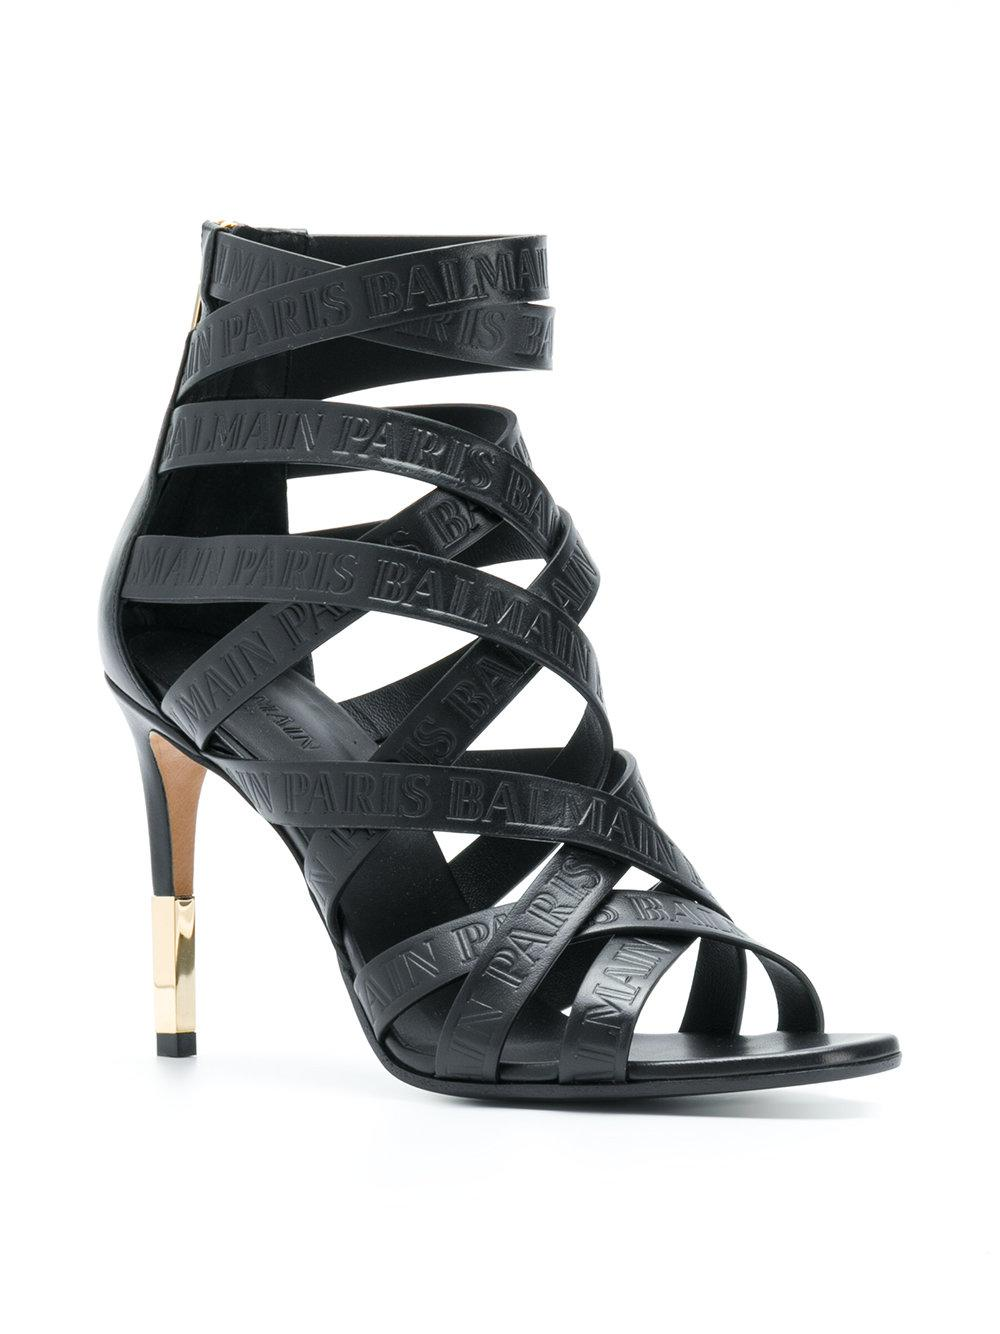 44fb54bc72ff Balmain Strappy Ankle Sandals in Black - Save 15% - Lyst